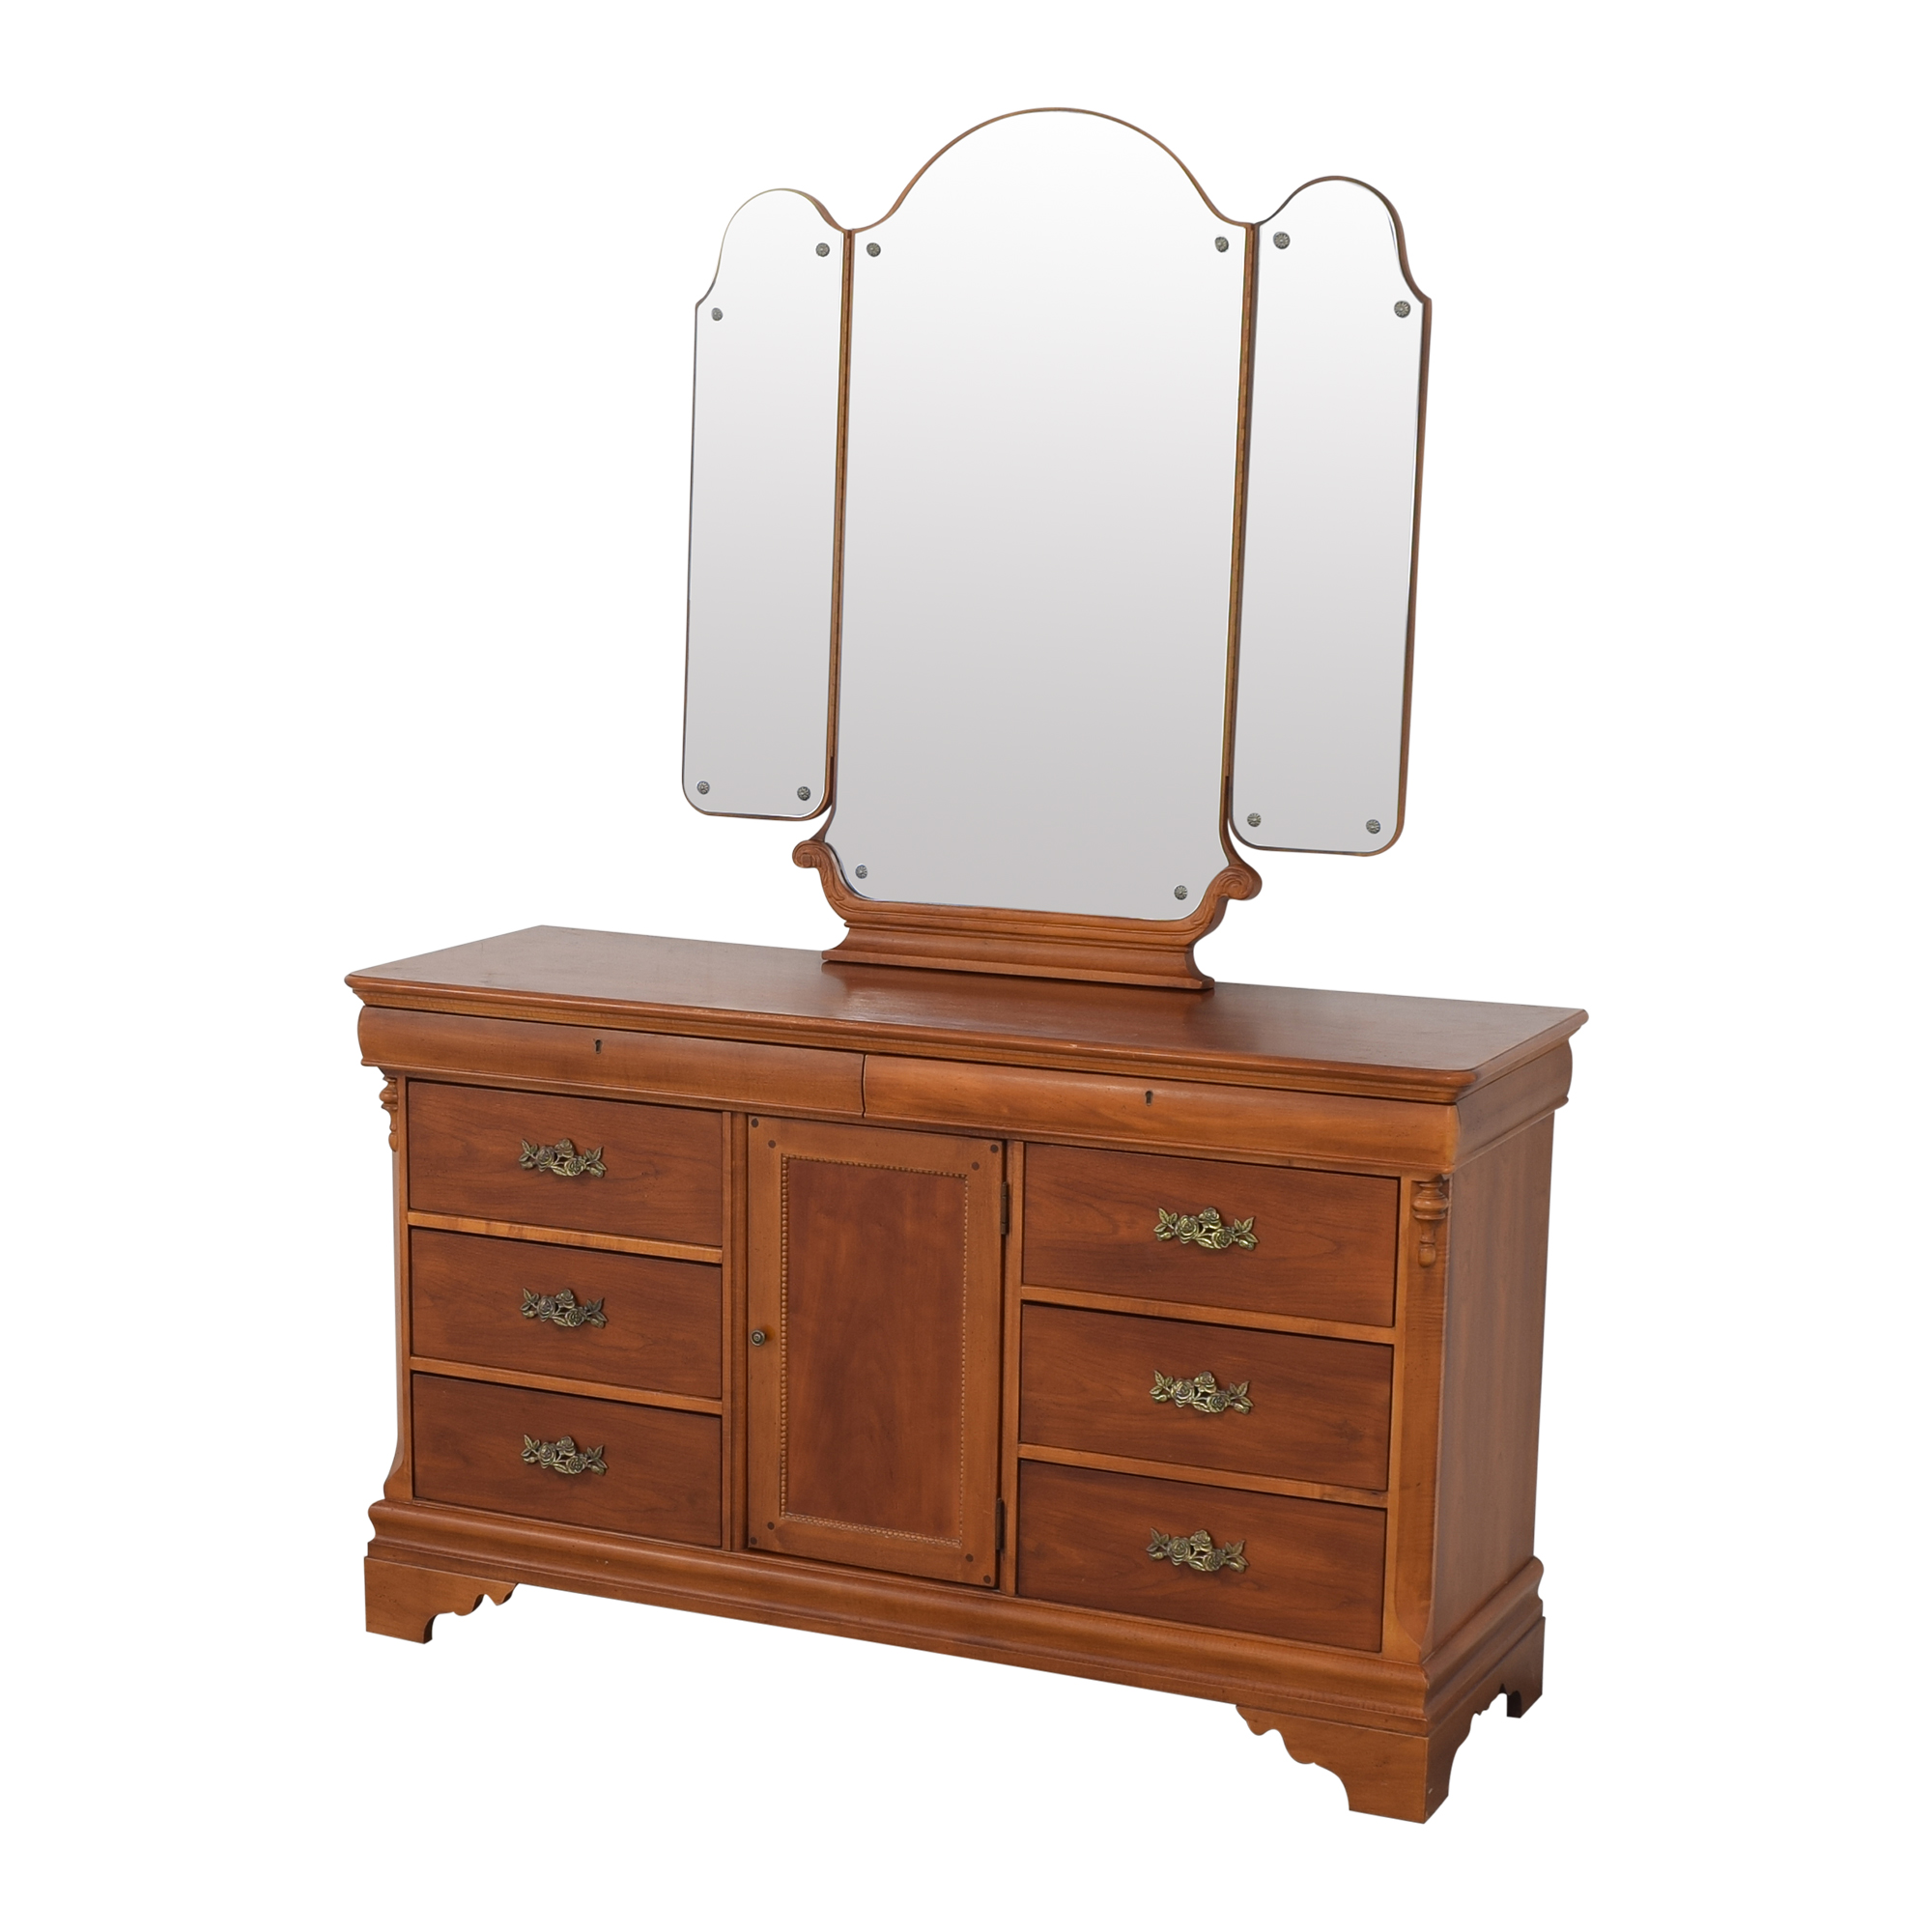 Betsy Cameron for Lexington Dresser with Mirror / Dressers